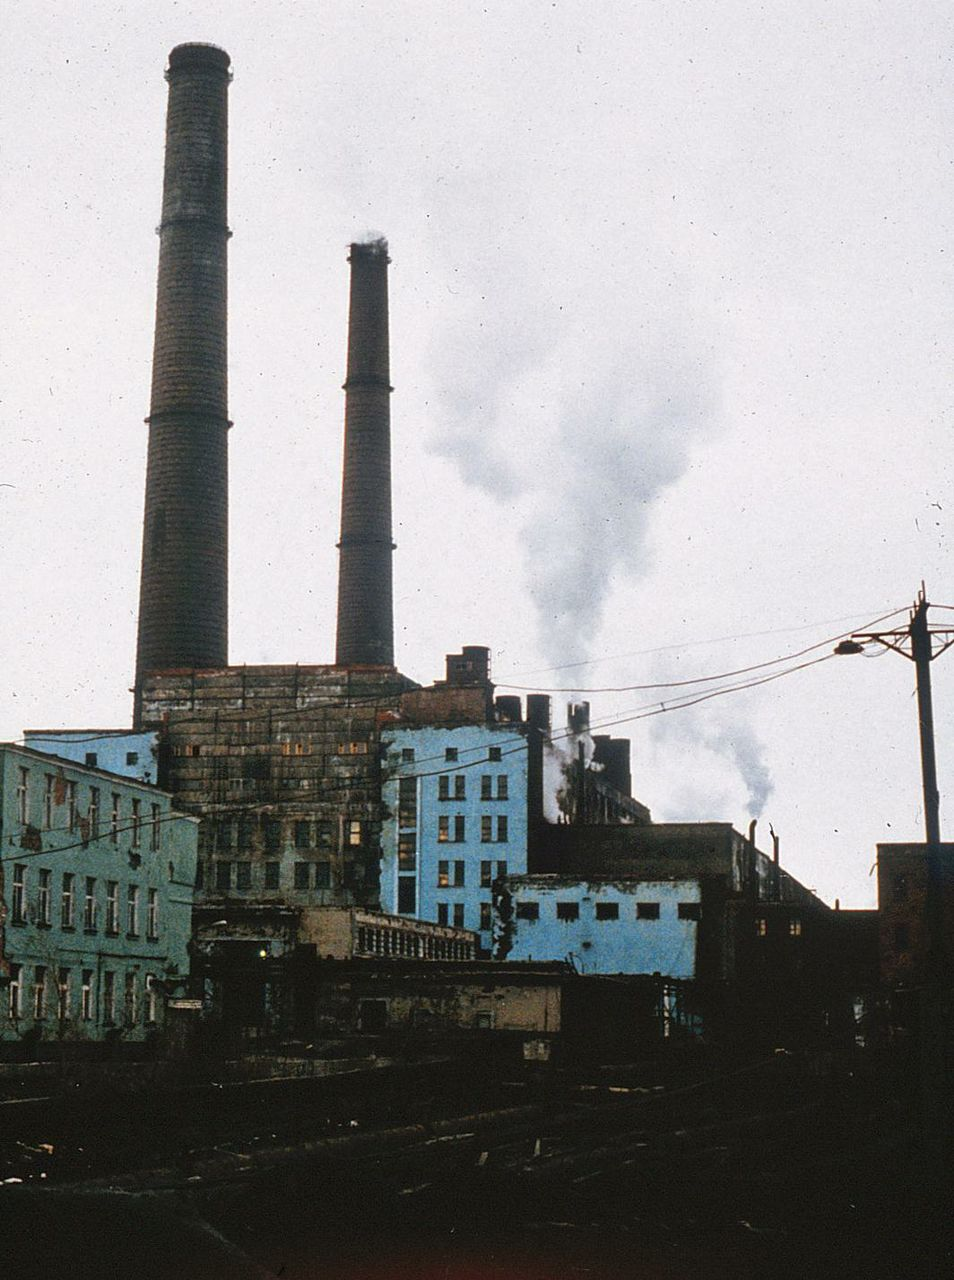 Smelters belch stench over Noril'sk, Siberia.